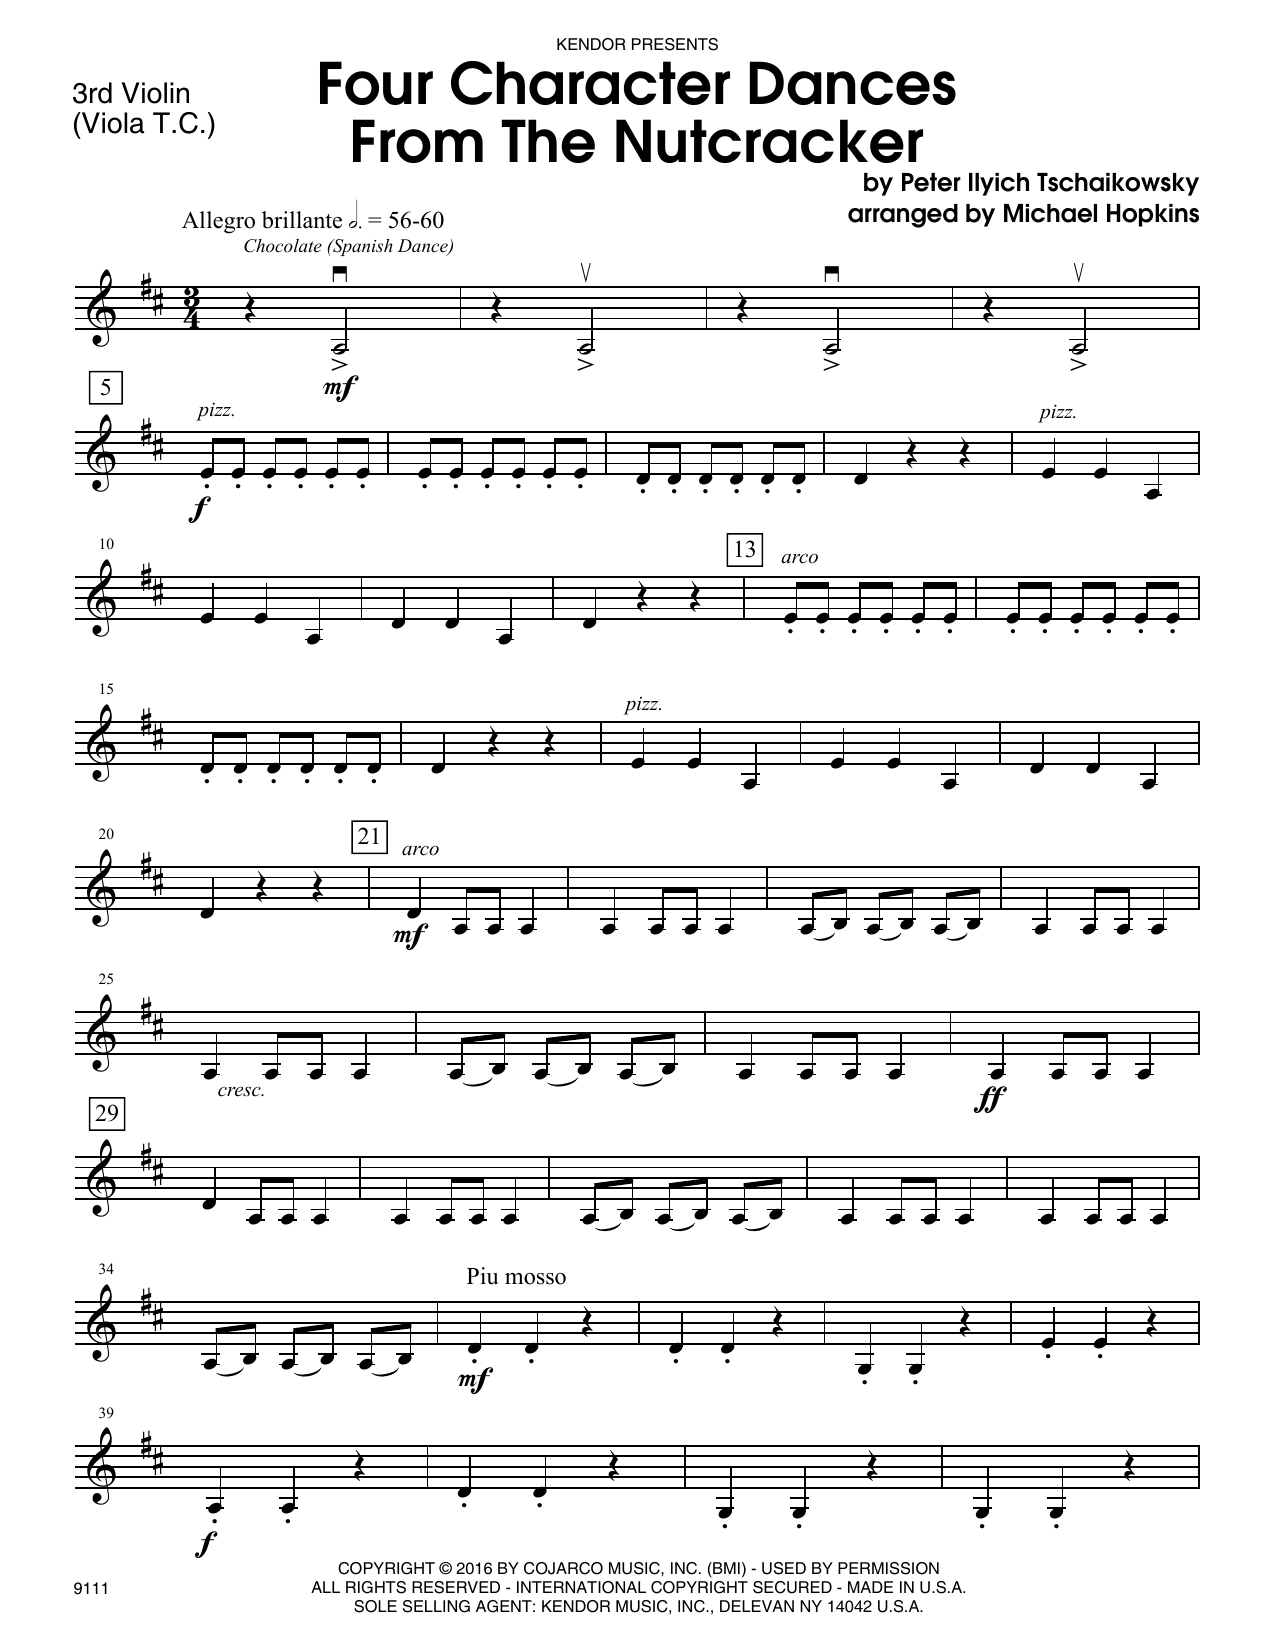 Four Character Dances From The Nutcracker - Violin 3 (Viola T.C.) Sheet Music